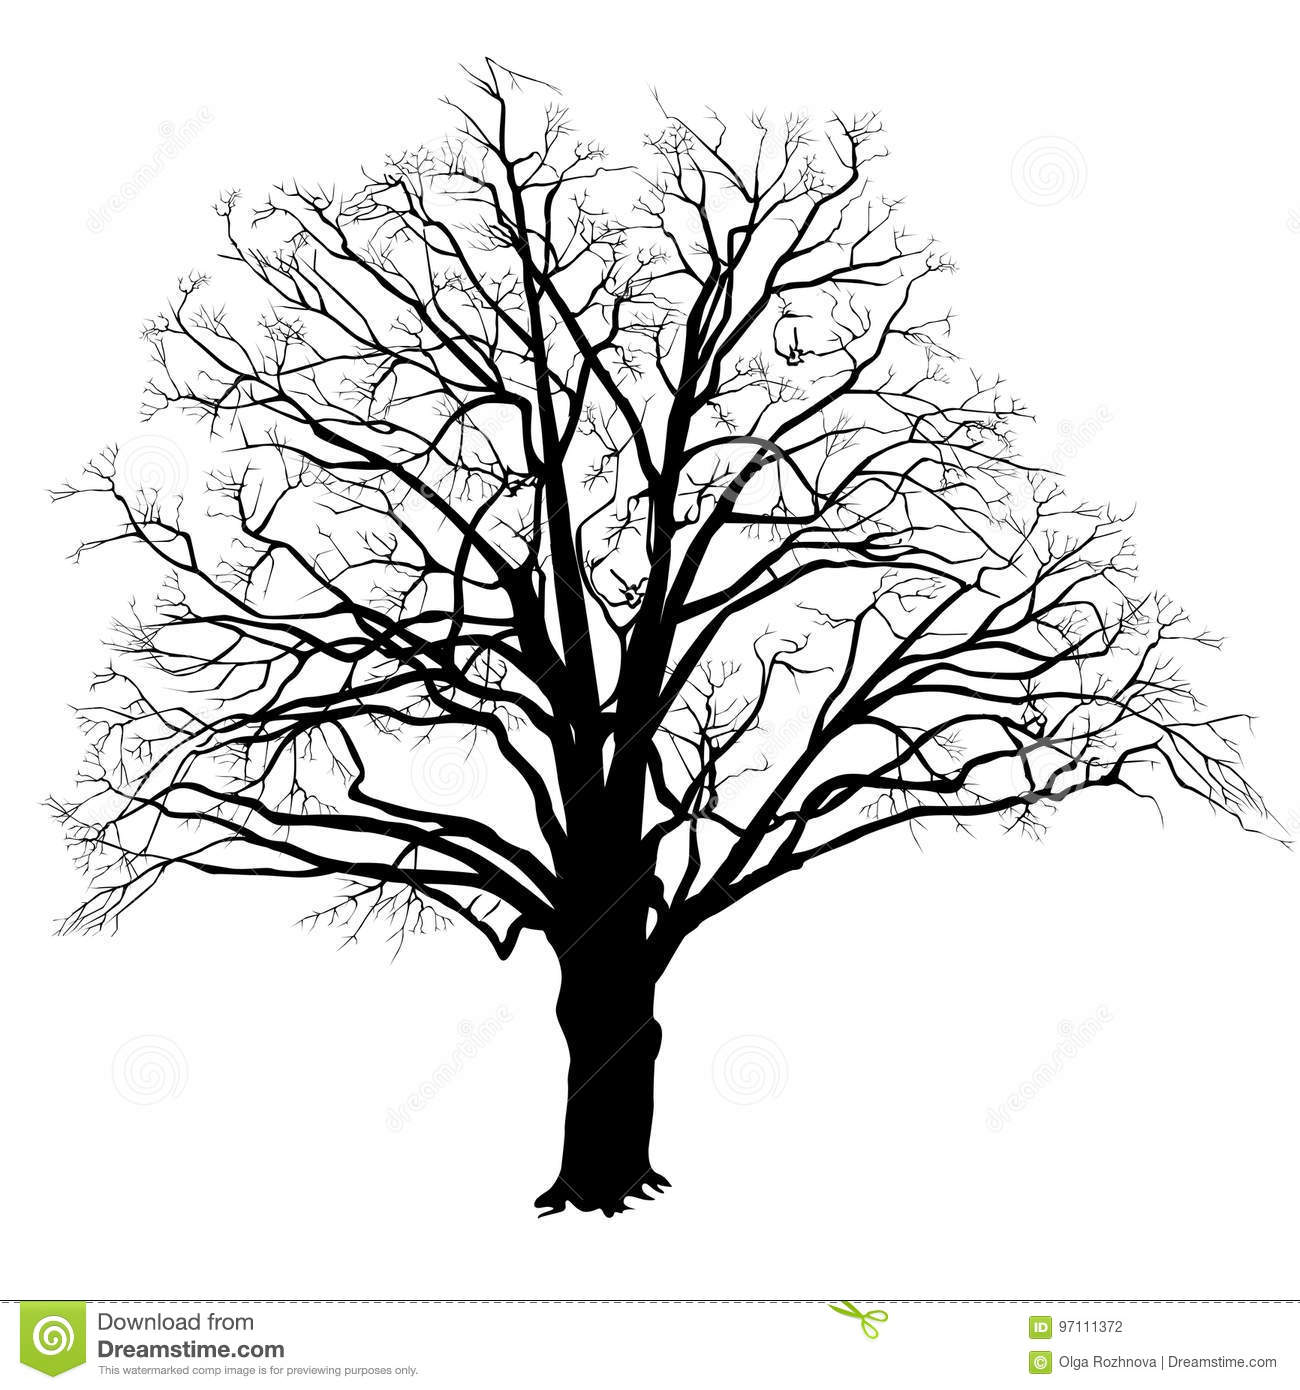 Oak Tree Silhouette With Fallen Leaves Black And White